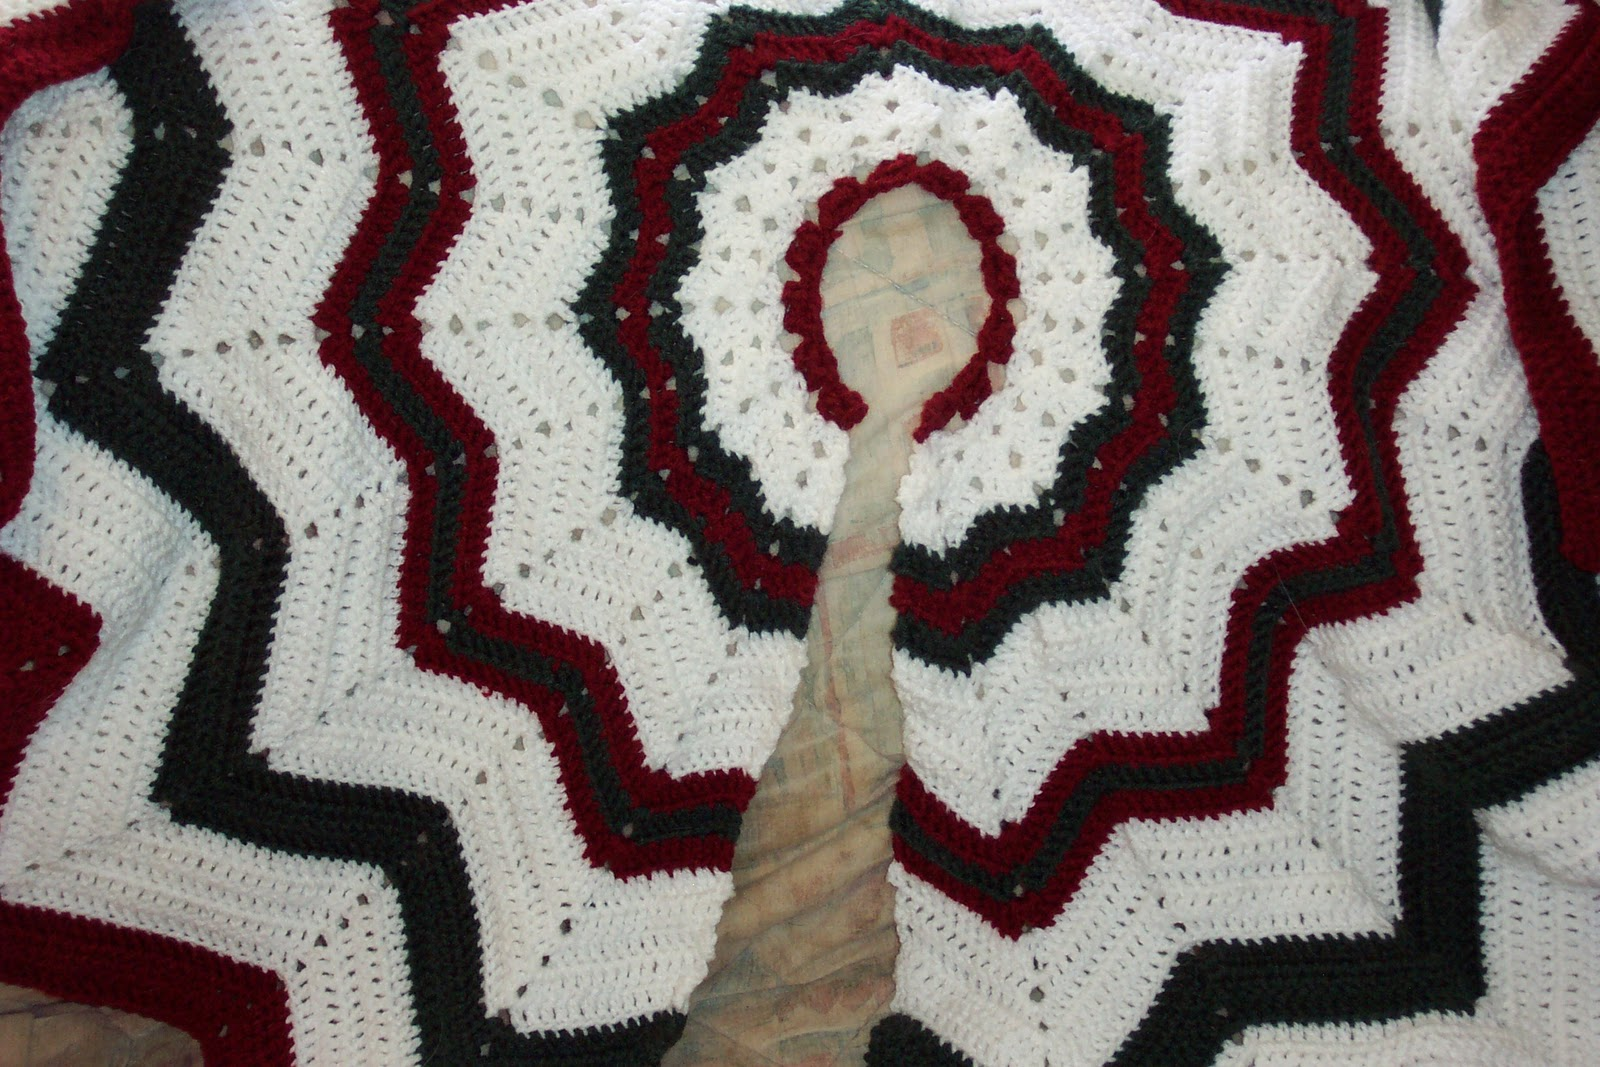 Smoothfox Crochet And Knit Dont Forget The Christmas Tree Skirt